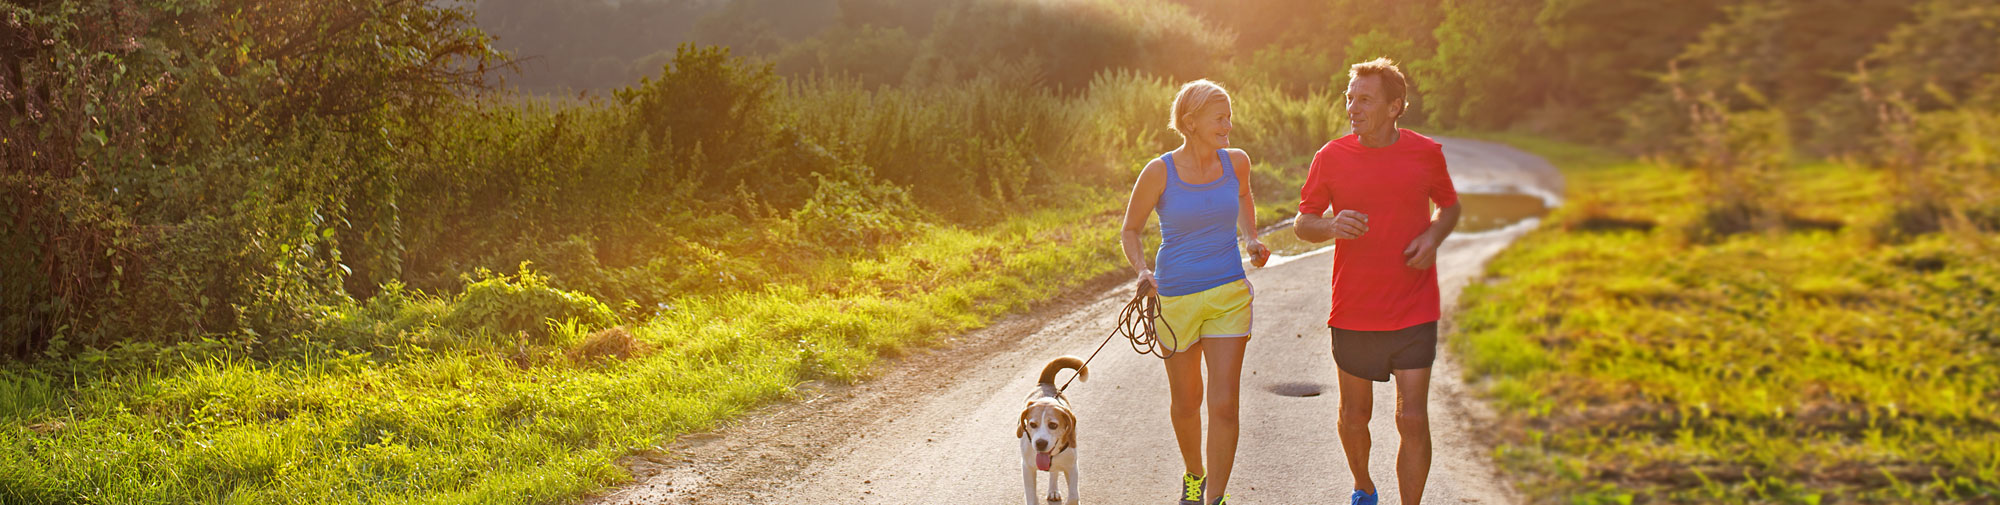 Couple jogging with dog.